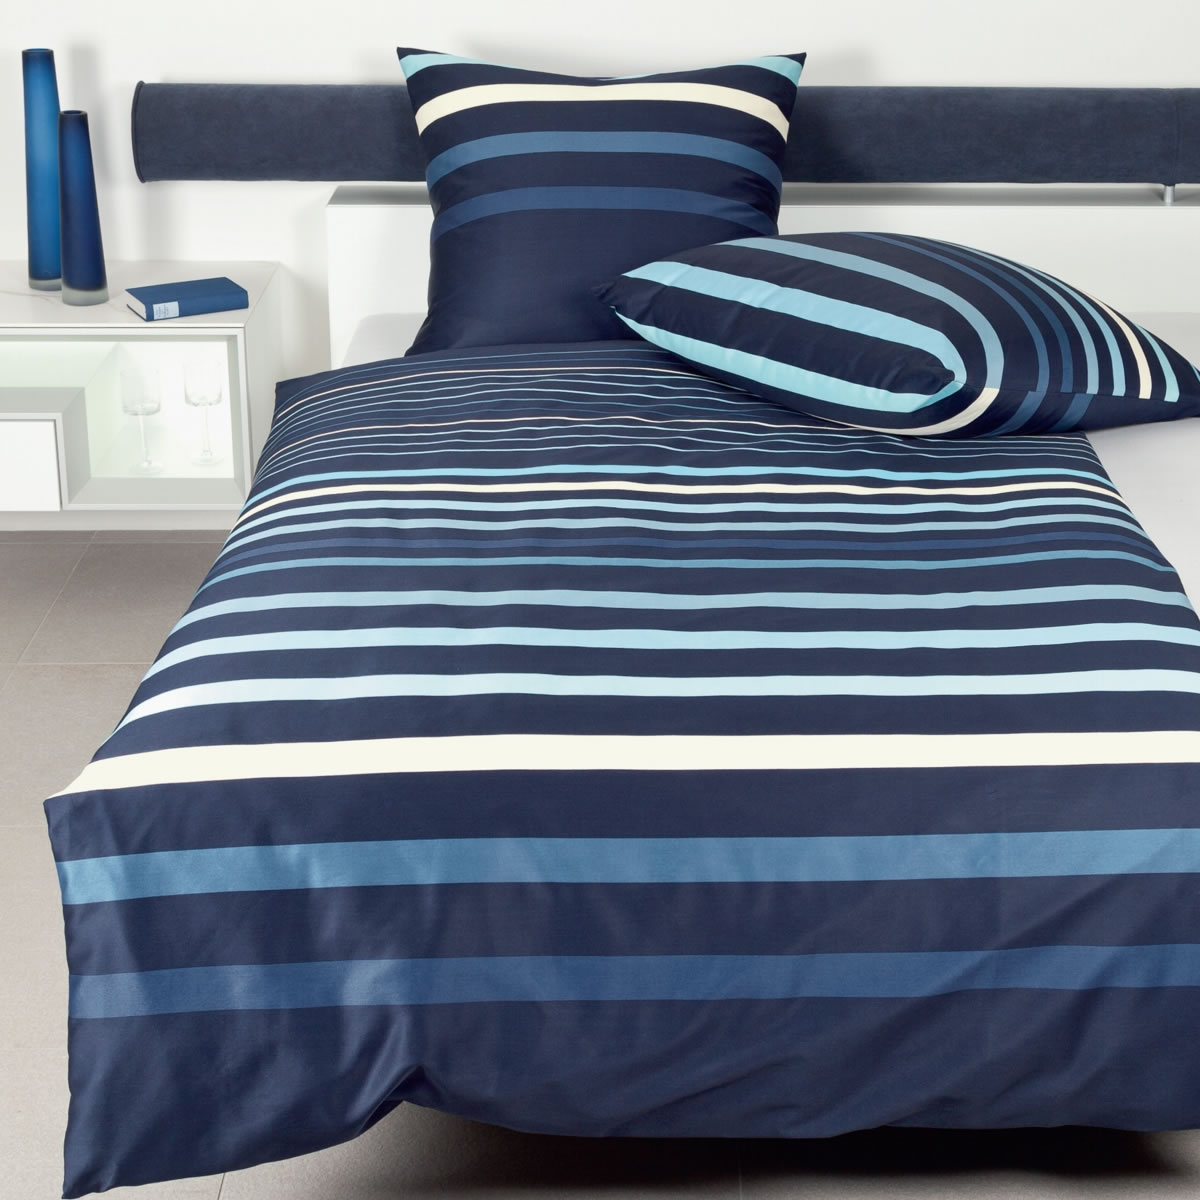 Janine Mako Satin Bettwäsche Jd Design 87033 02 Blau Gestreift